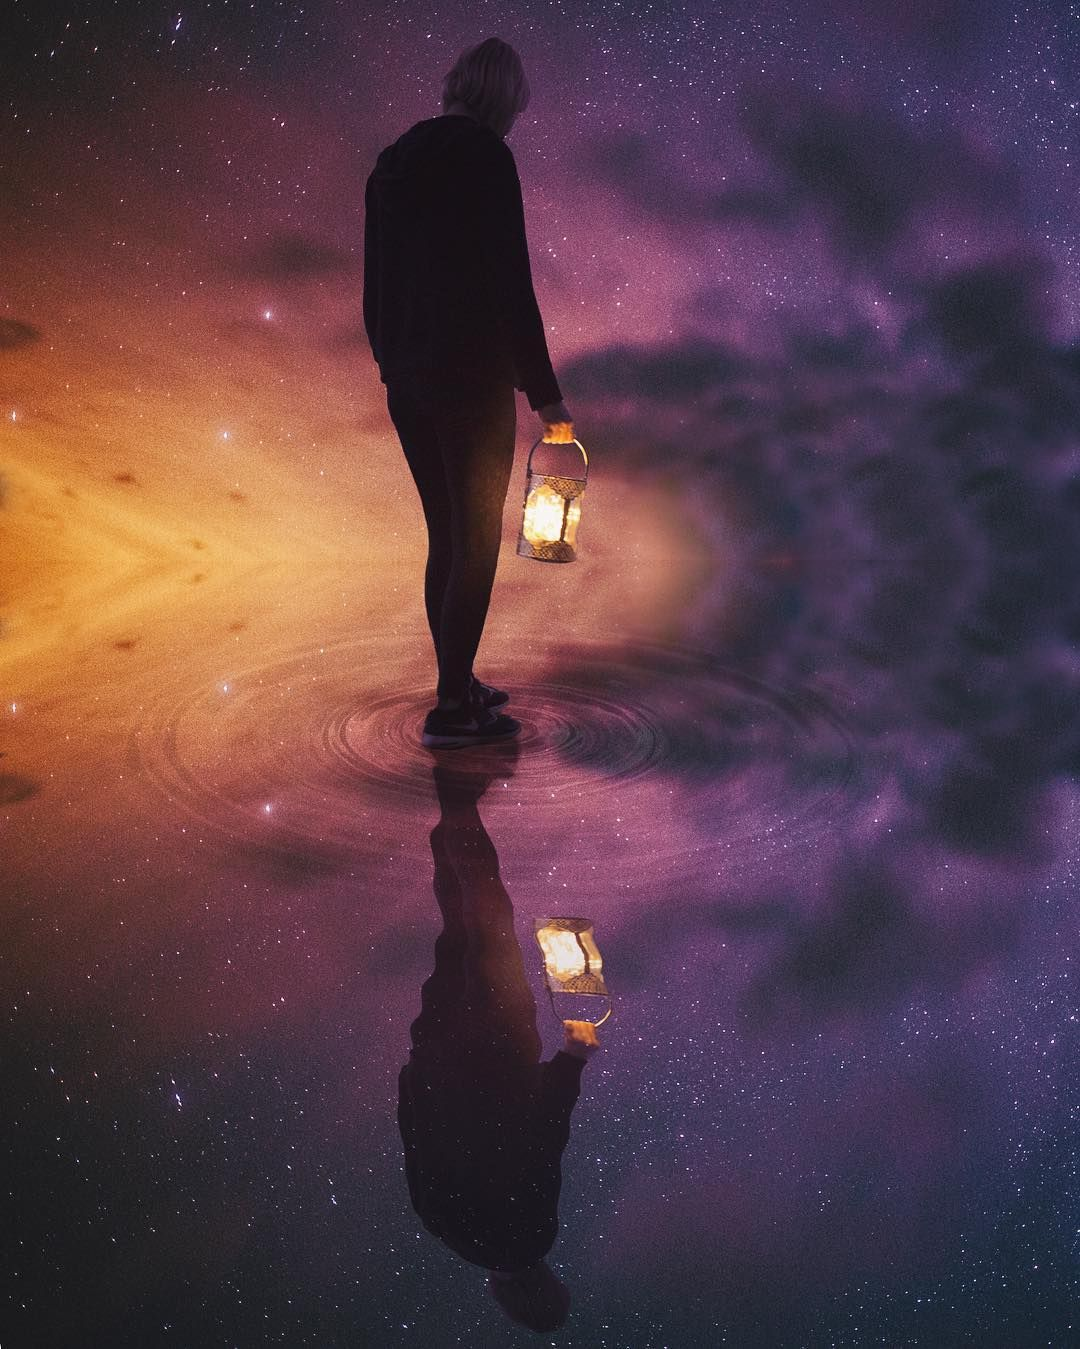 Dreamlike And Surreal Photo Composites By Anna McNaught - Photographer uses photoshop to create surreal dreamy composite images